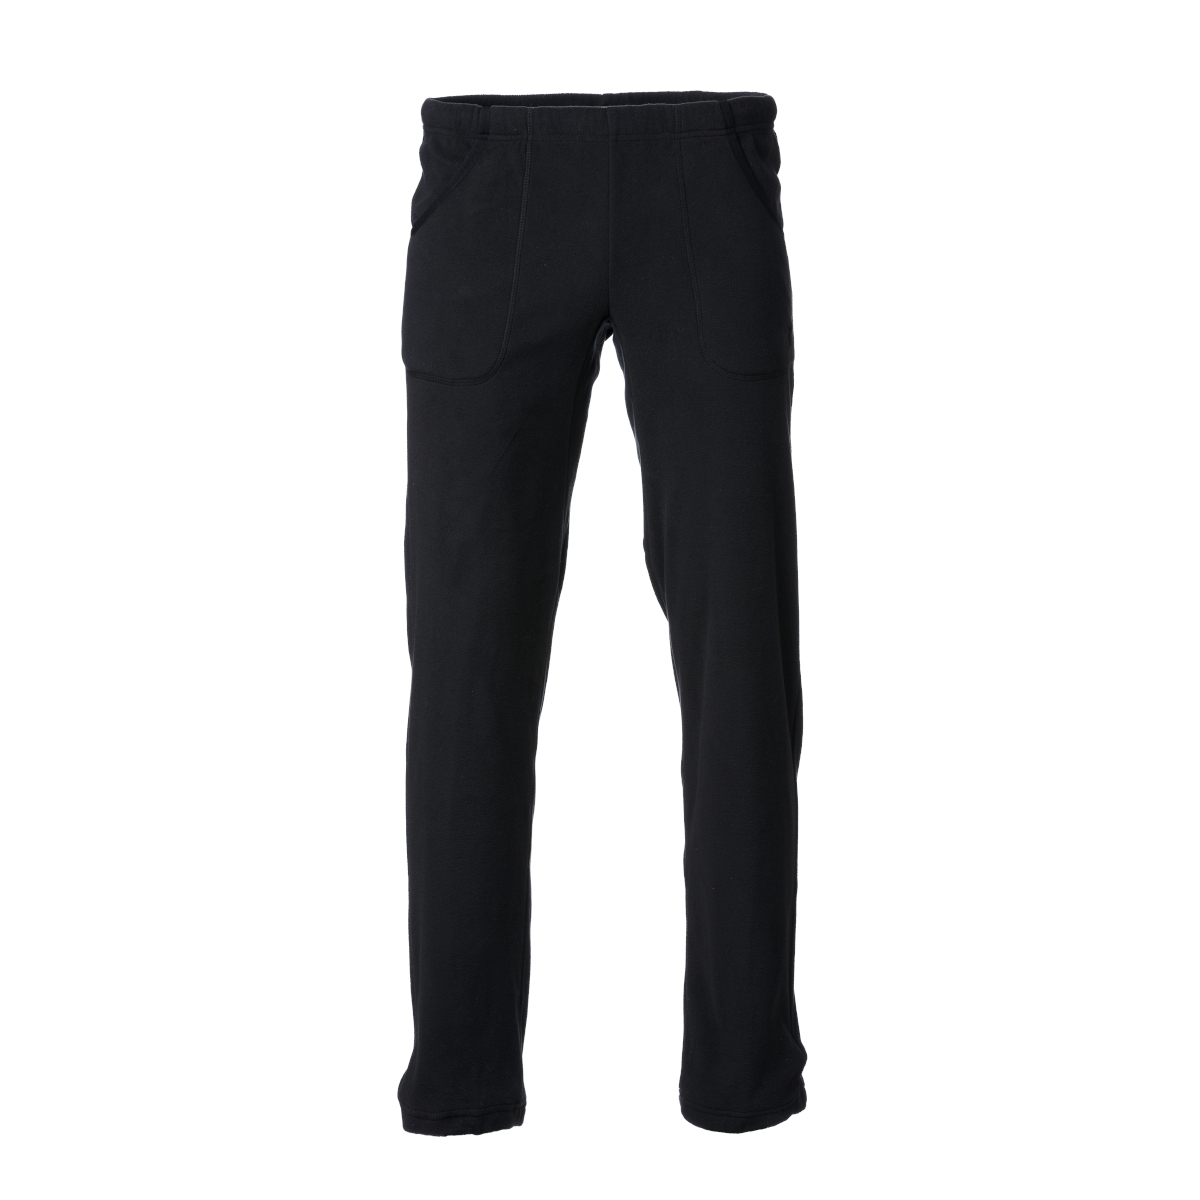 Turbat Stig 2 pants